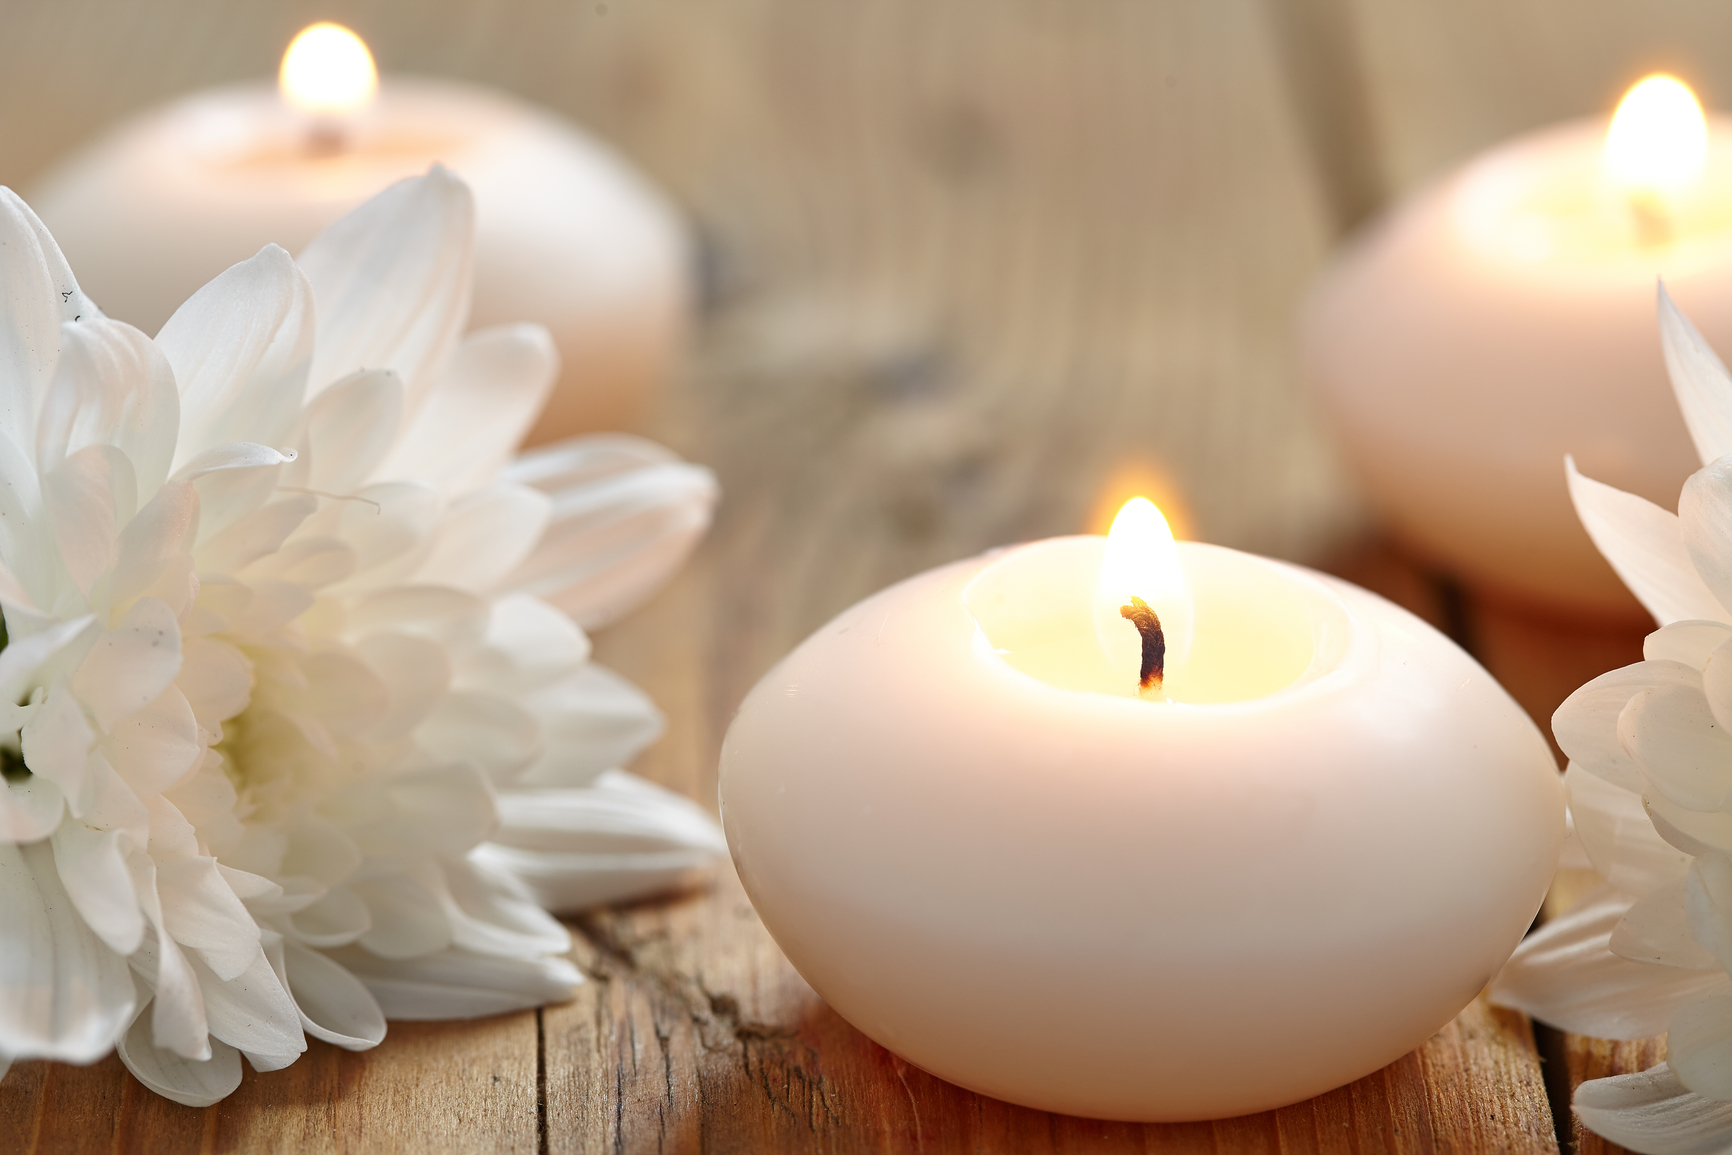 Candles and flowers on wooden table